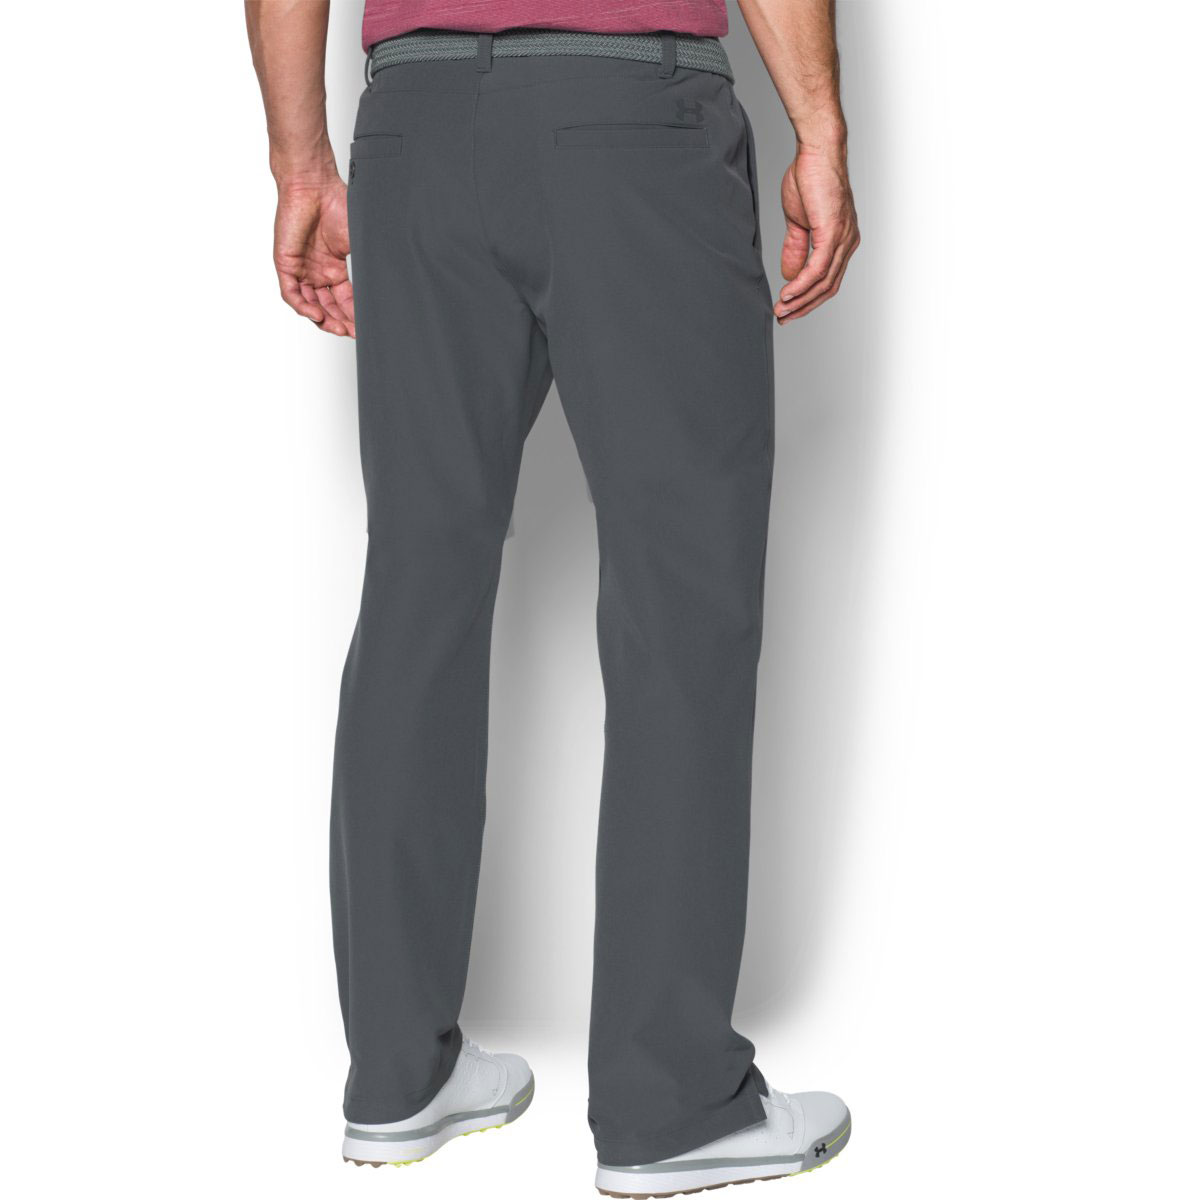 Under-Armour-Mens-Match-Play-ColdGear-Infrared-Taper-Golf-Trousers-52-OFF-RRP thumbnail 19